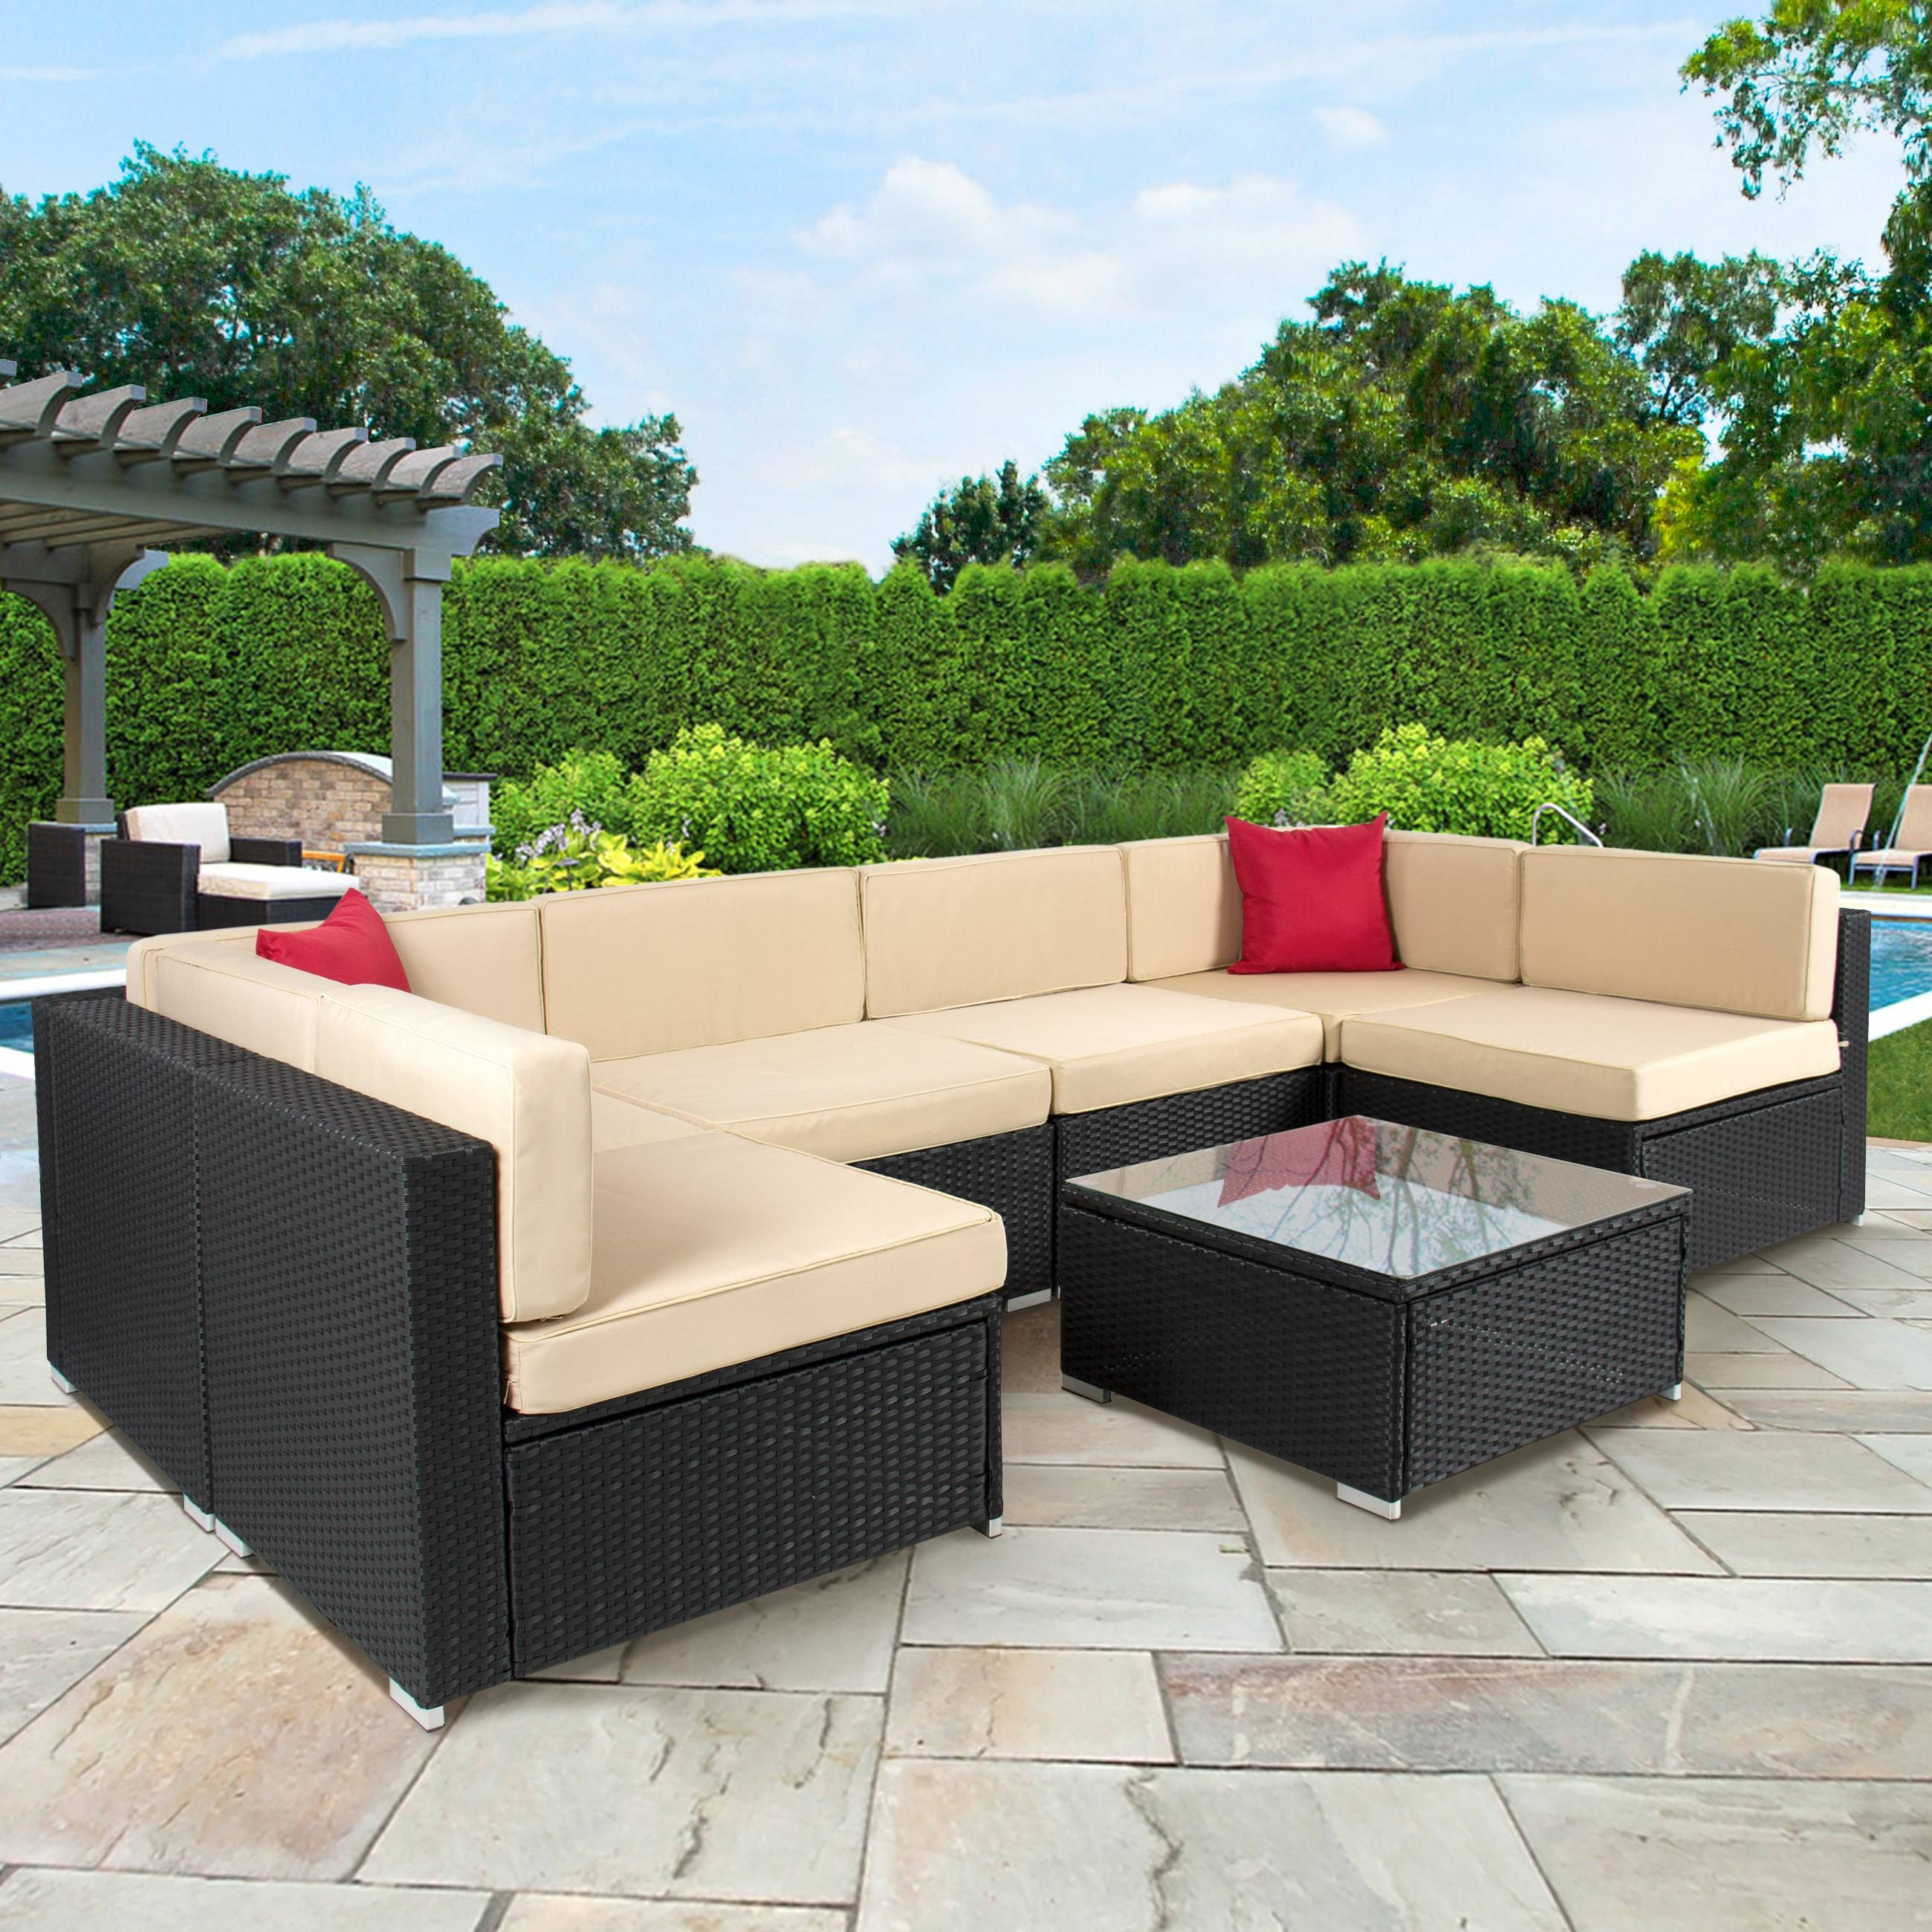 Best Choice Products Outdoor Garden Patio 4Pc Cushioned Seat Black Intended For Black Wicker Sofas (View 3 of 15)